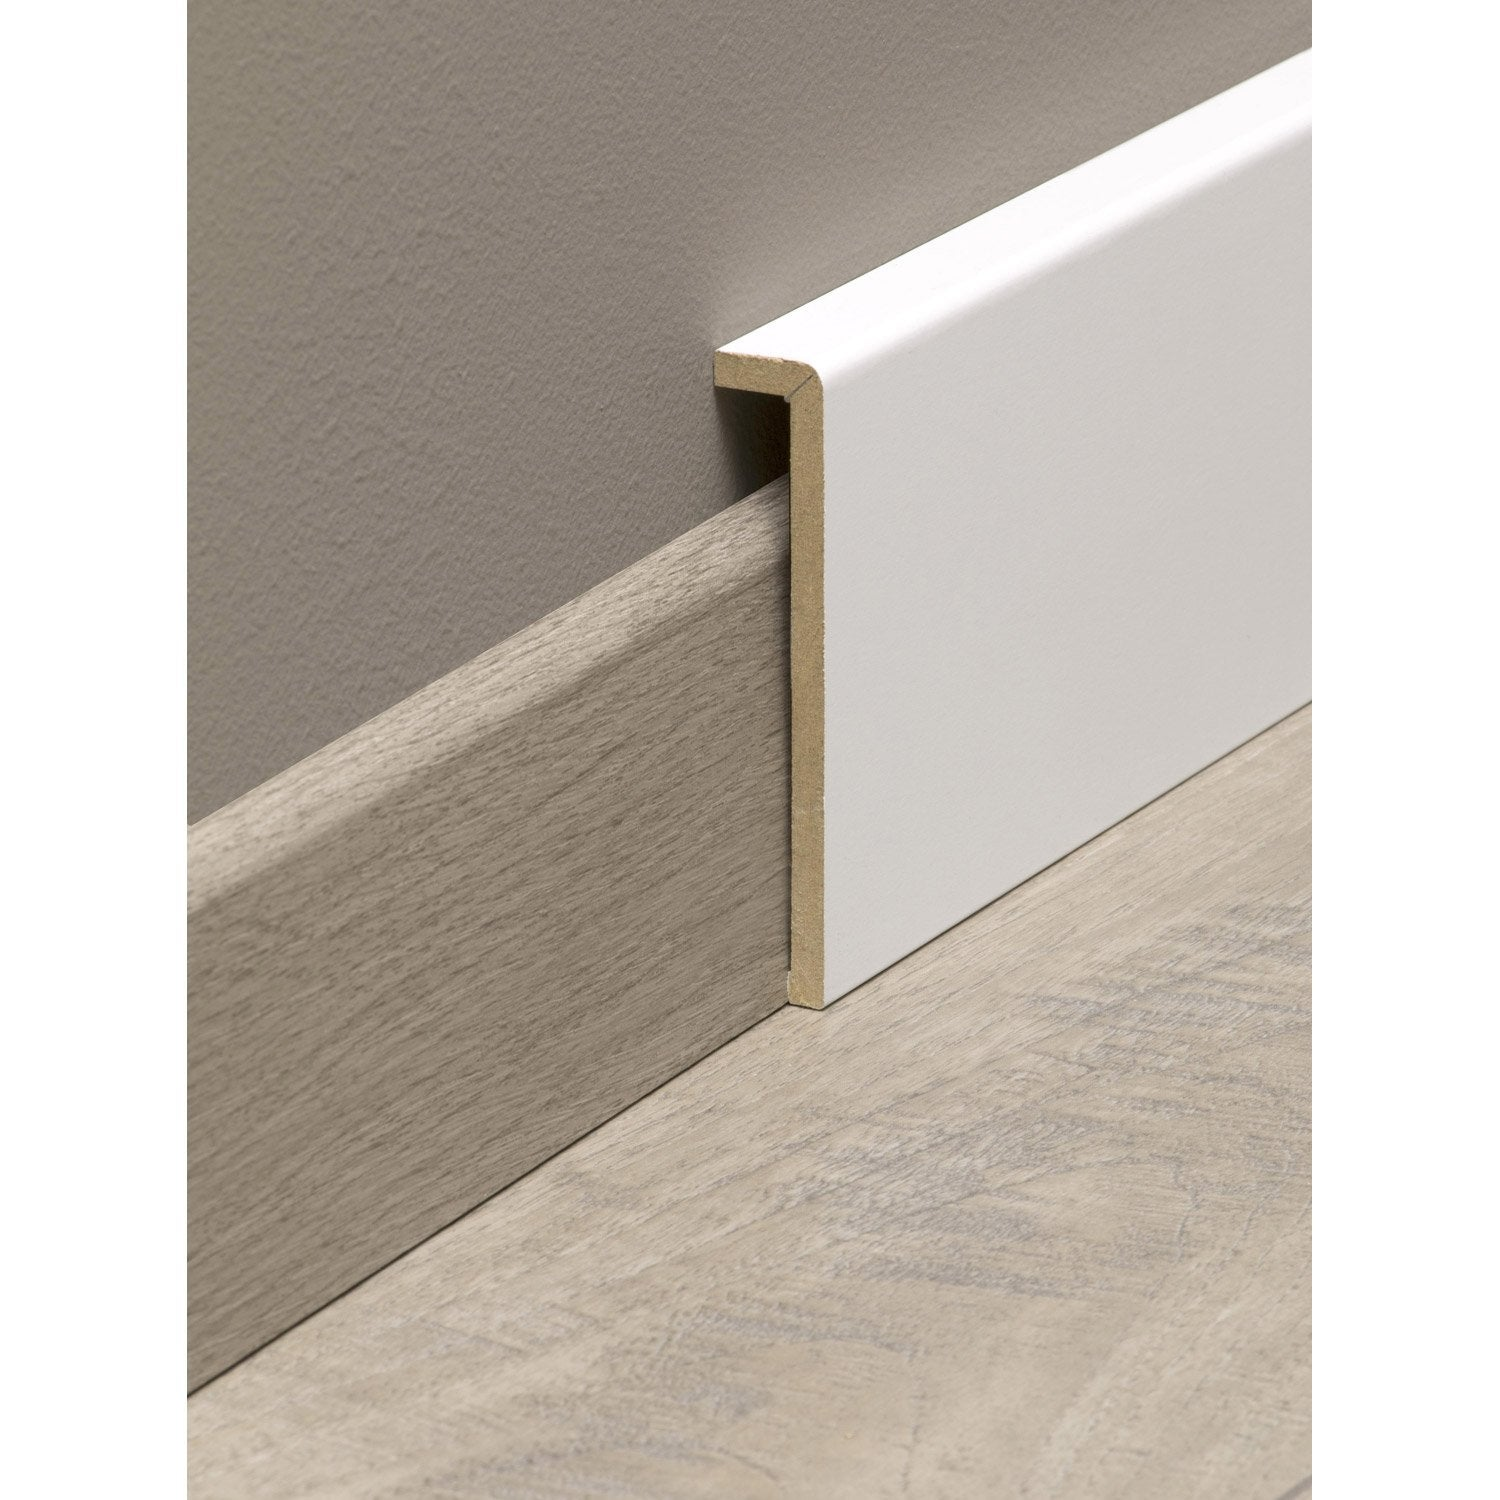 Surplinthe de r novation m dium mdf m lamin blanc 19 x 110 mm l 2 2 m leroy merlin for Plinthe renovation